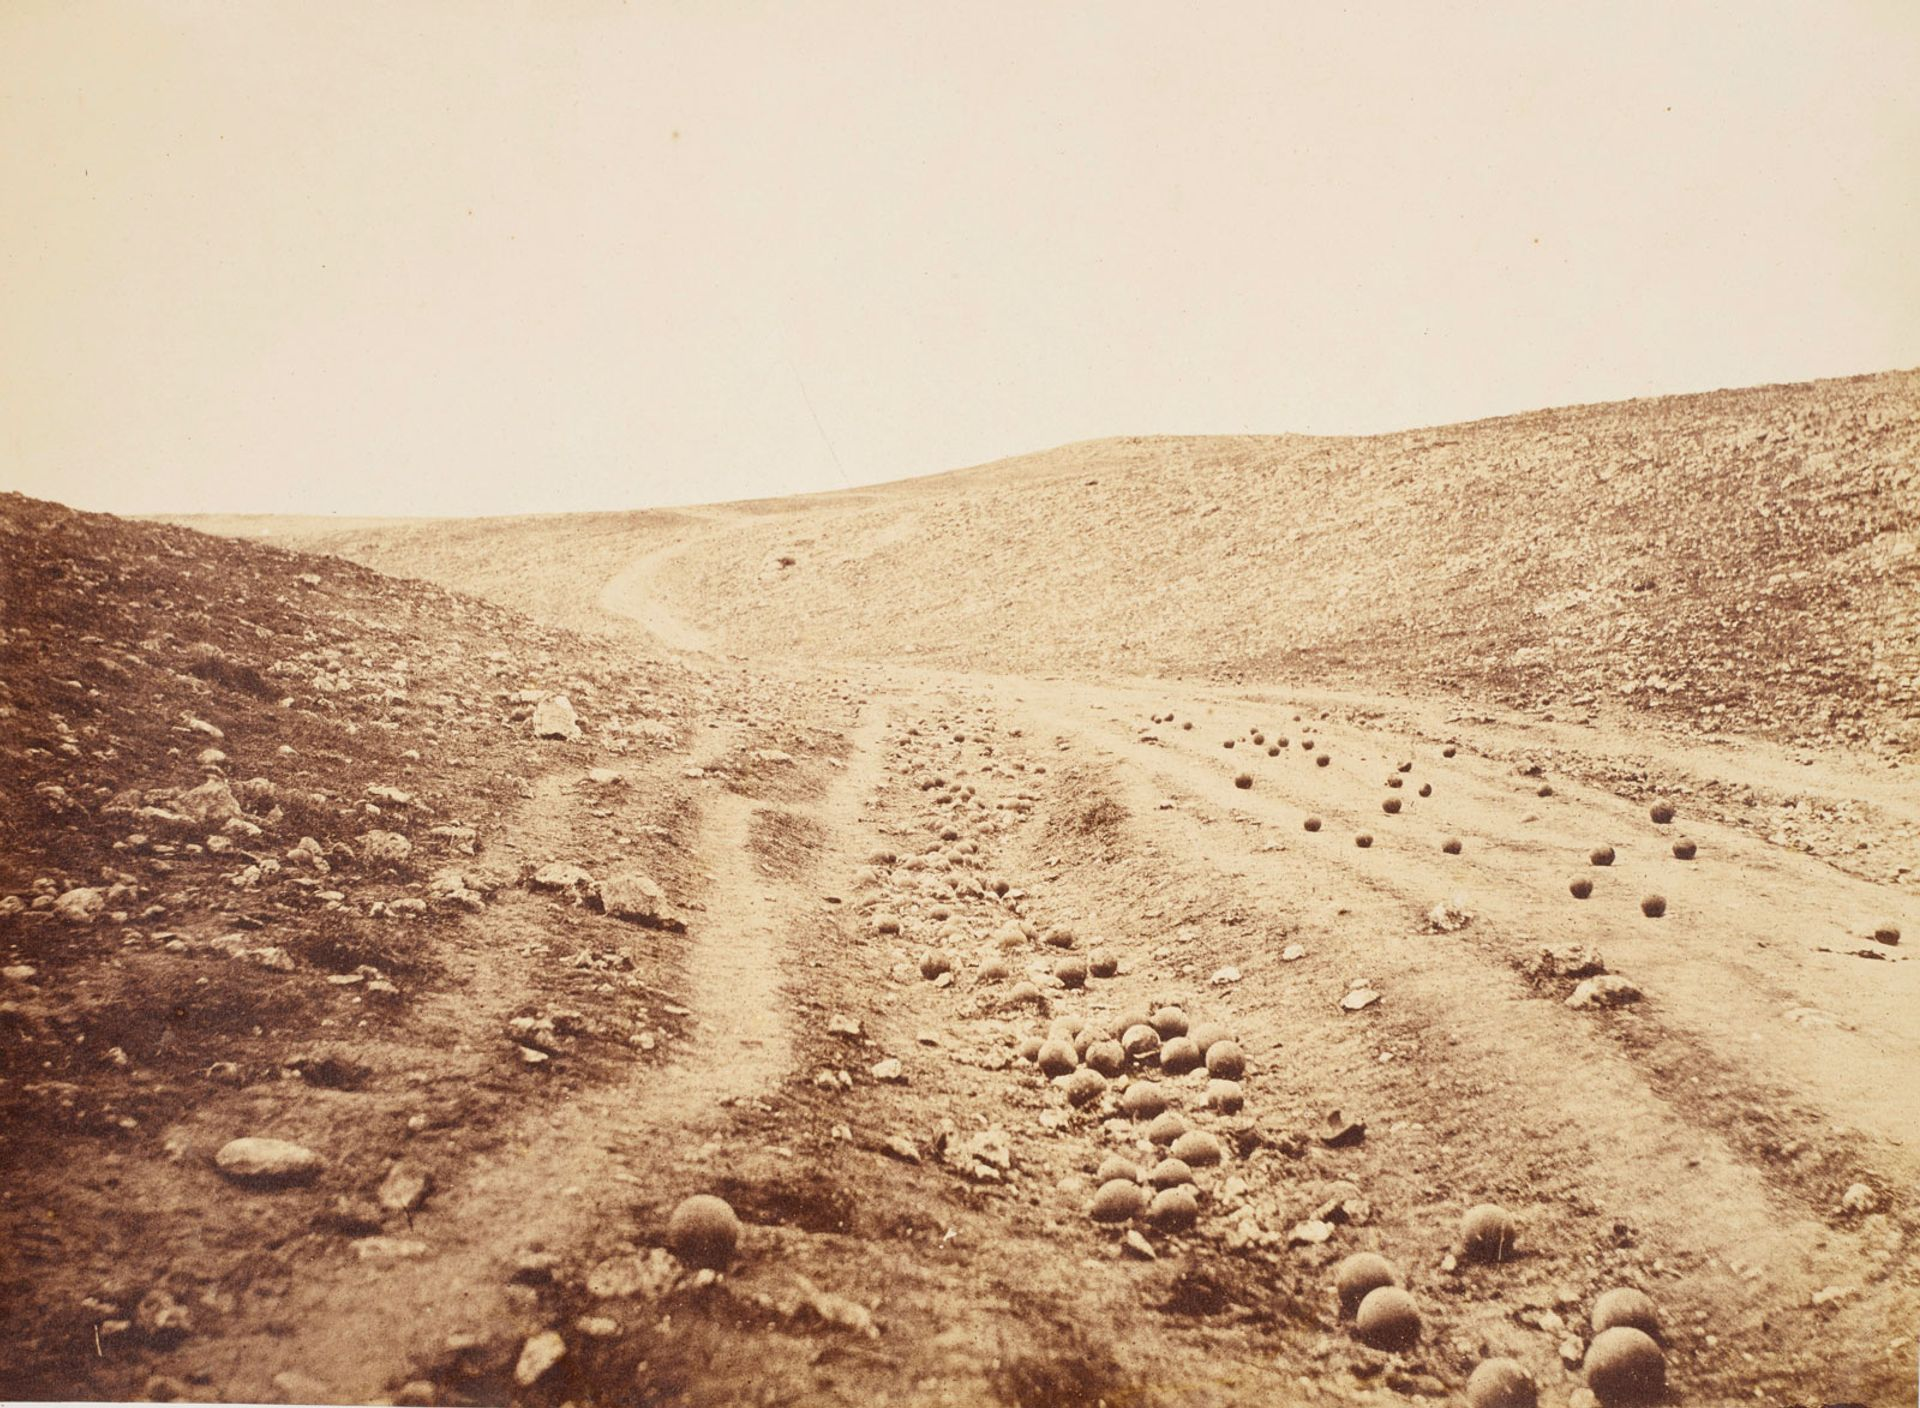 Roger Fenton's TheValley of the Shadow of Death (1855) © Royal Collection Trust; Her Majesty Queen Elizabeth II 2018